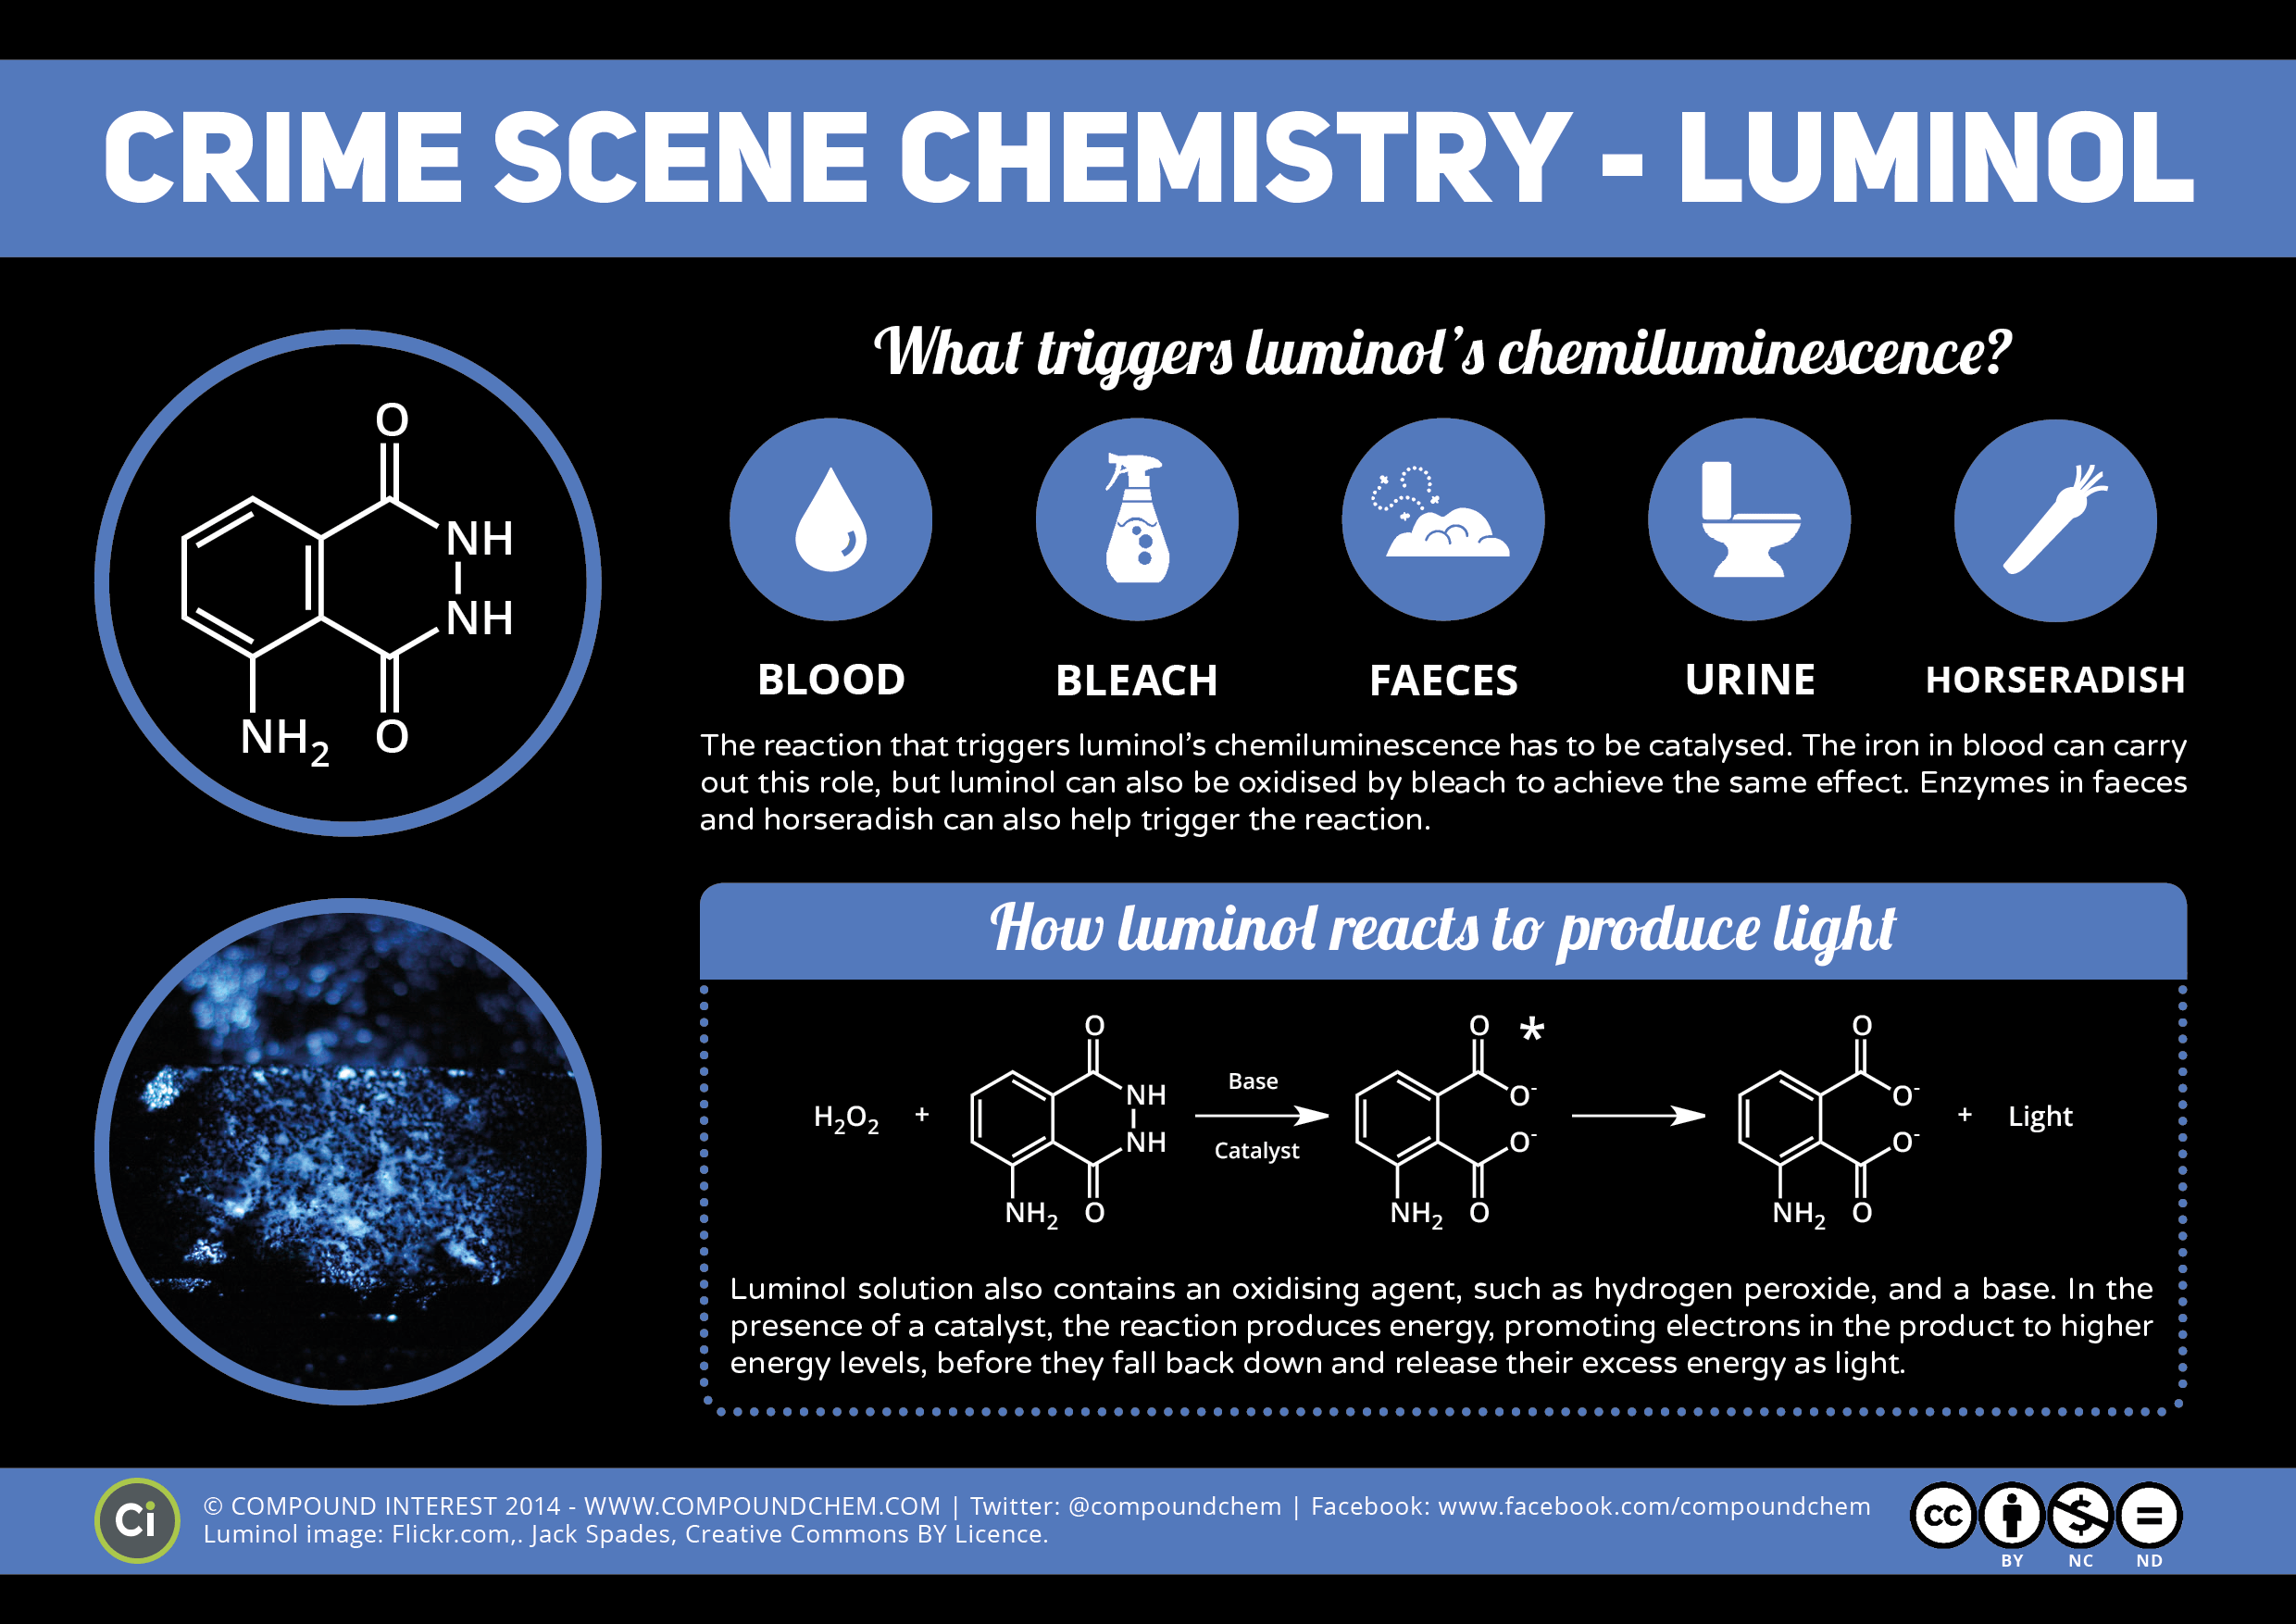 luminol a chemiluminescent compound Introduction purpose: demonstrate how a chemical process can lead to a photochemical outcome through the synthesis of a chemiluminescent substance, luminol other examples of chemiluminescent compounds: luciferacse (produces light in fireflies) cyalume® (used in glow sticks.